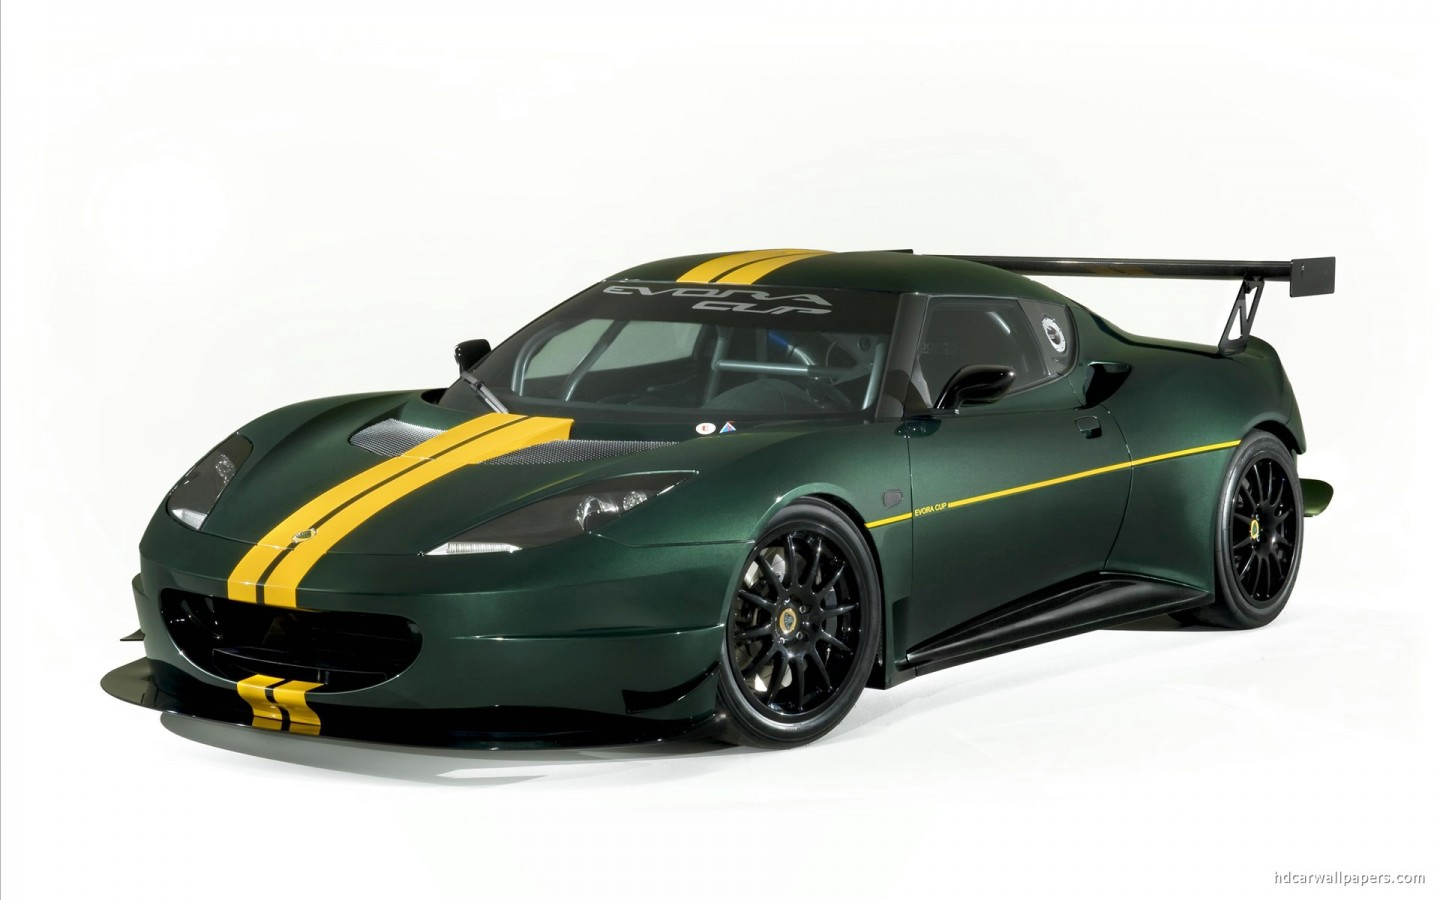 2010 lotus evora cup race car wallpaper hd car wallpapers id 1049. Black Bedroom Furniture Sets. Home Design Ideas